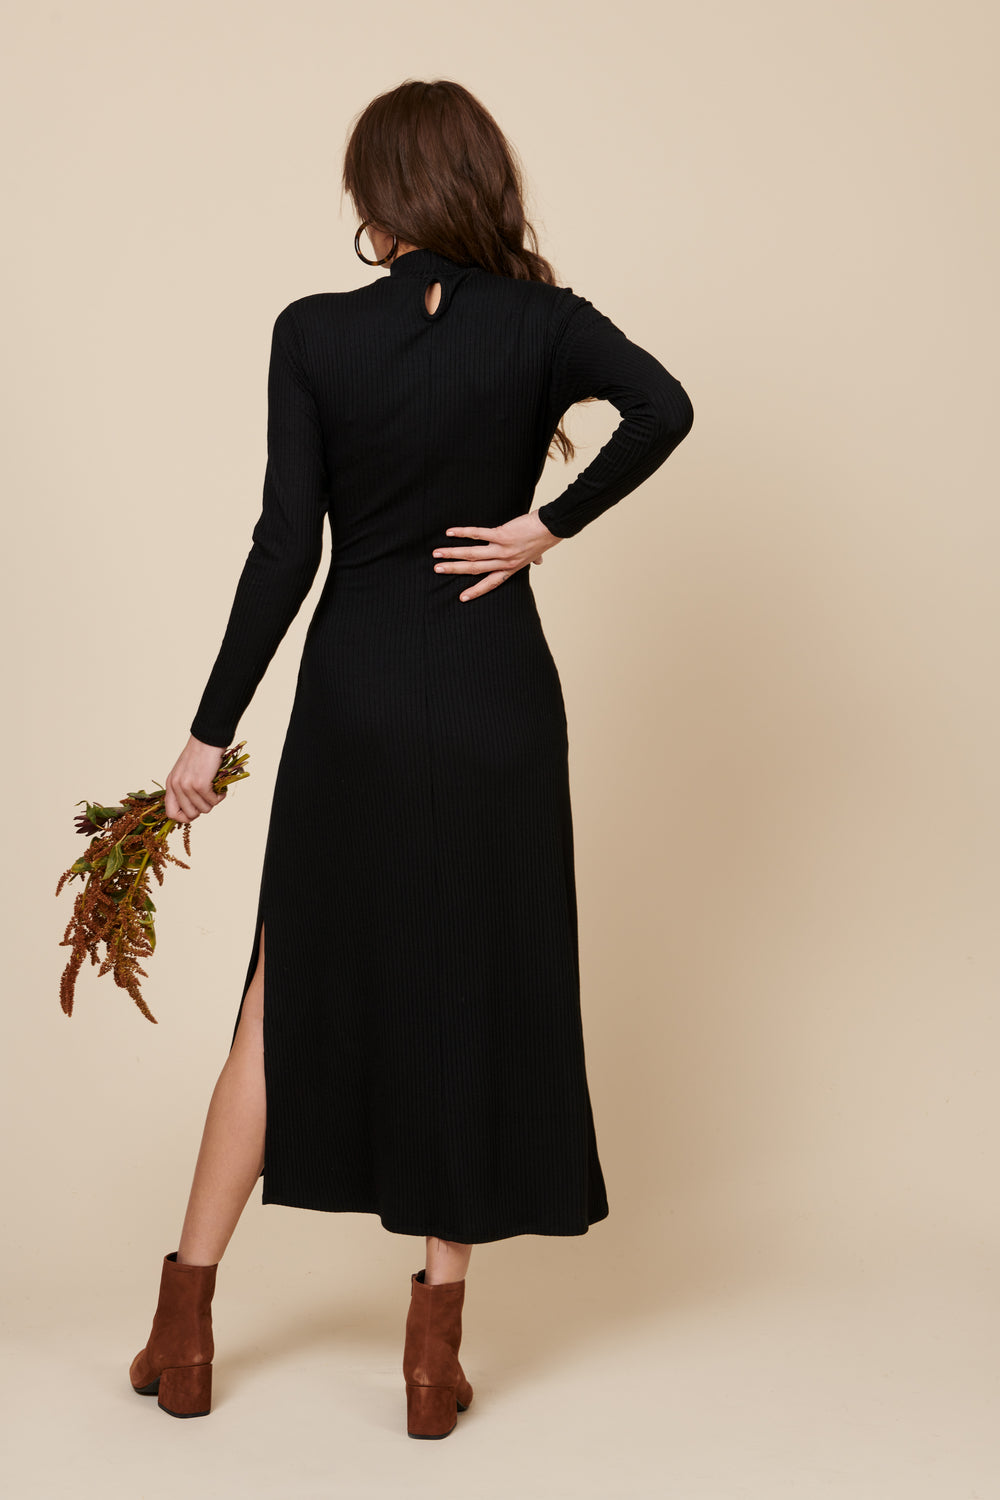 The Joan Dress in Black - Whimsy & Row